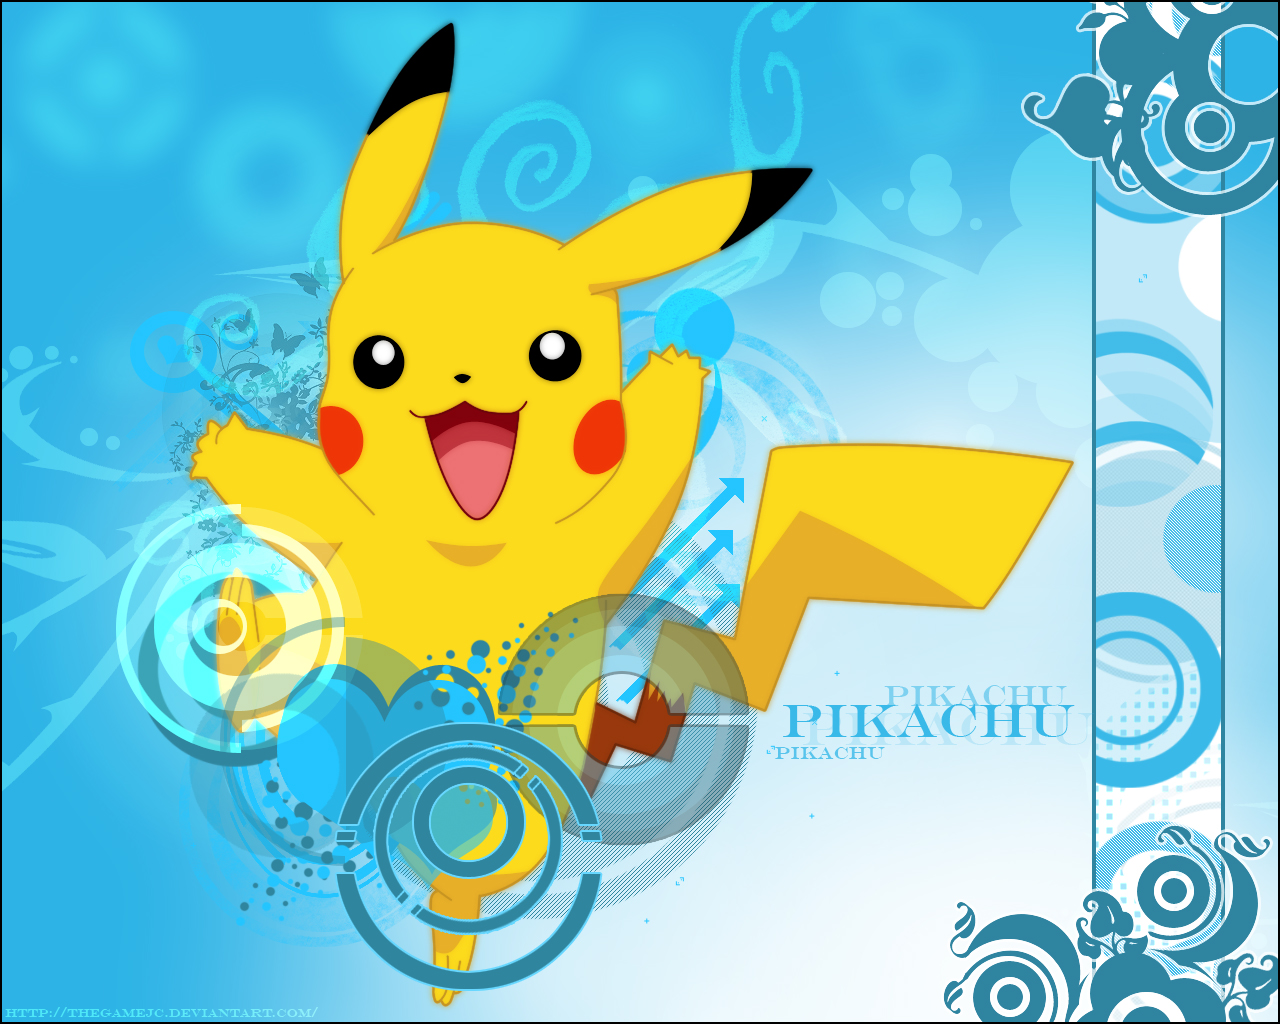 Wallpaper download pokemon - Pokemon Free Mobile Phone Wallpapers 99806 3707 Wallpaper Cool